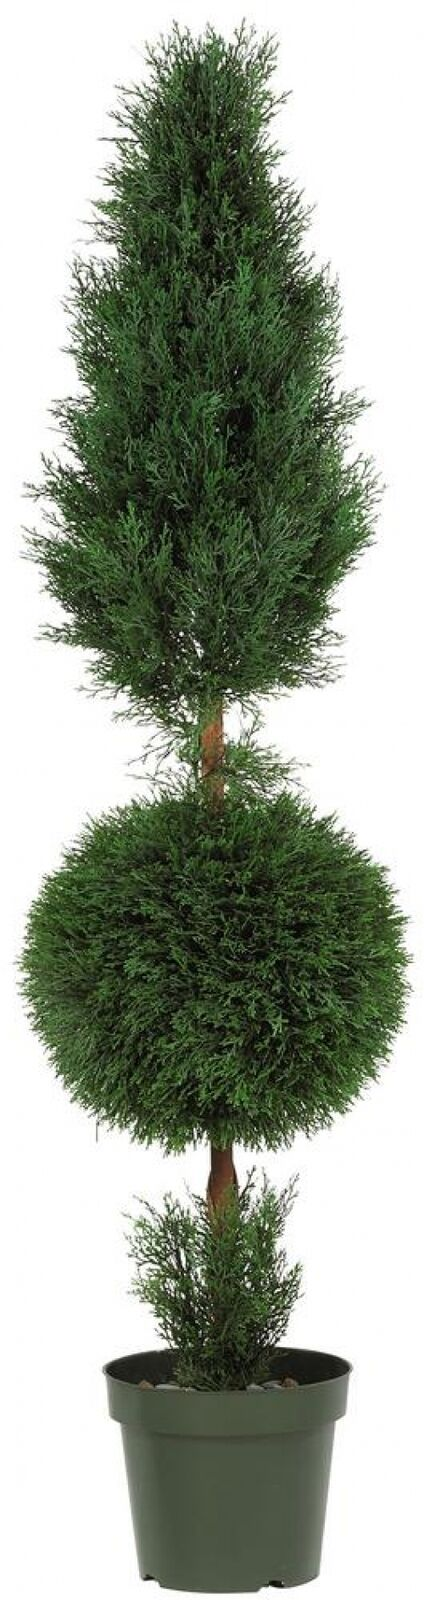 Artificial Plant 5 ft. Cypress Ball and Cone Silk Tree with Plastic Planter